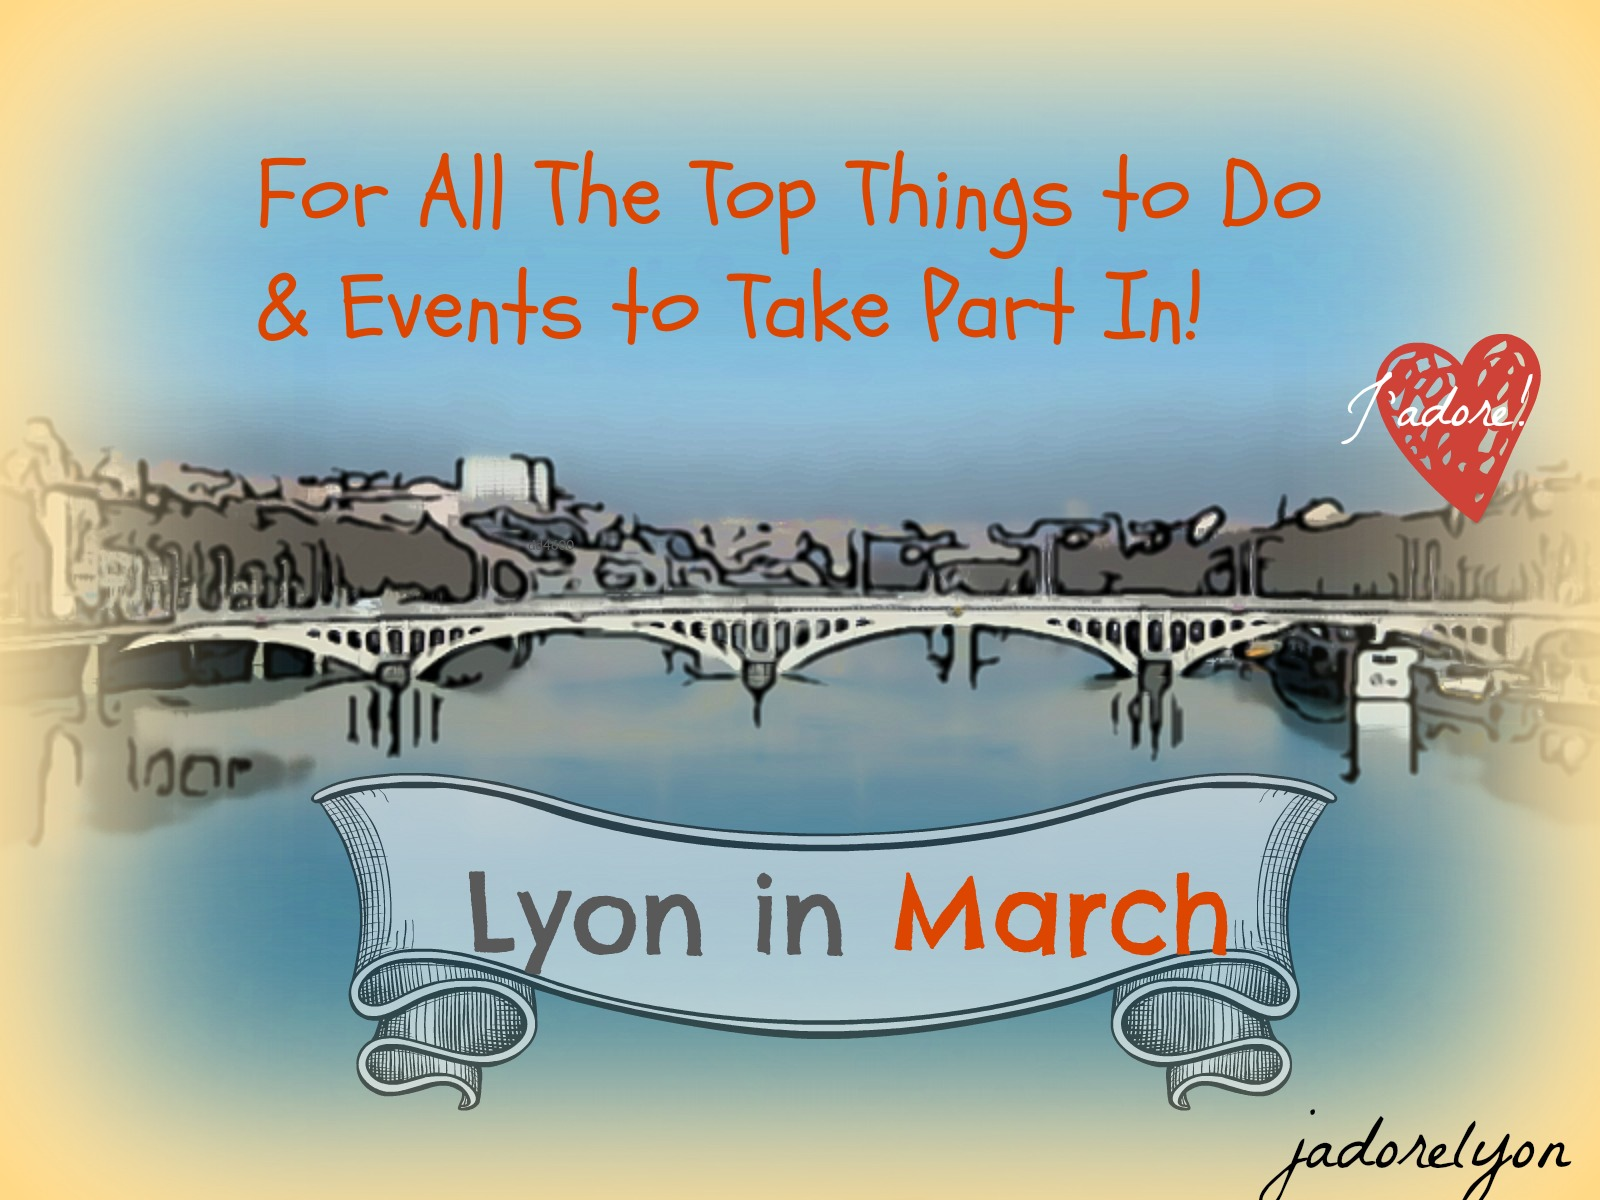 Salon Tourisme Lyon Lyon In March For All The Top Things To Do Events To Take Part In